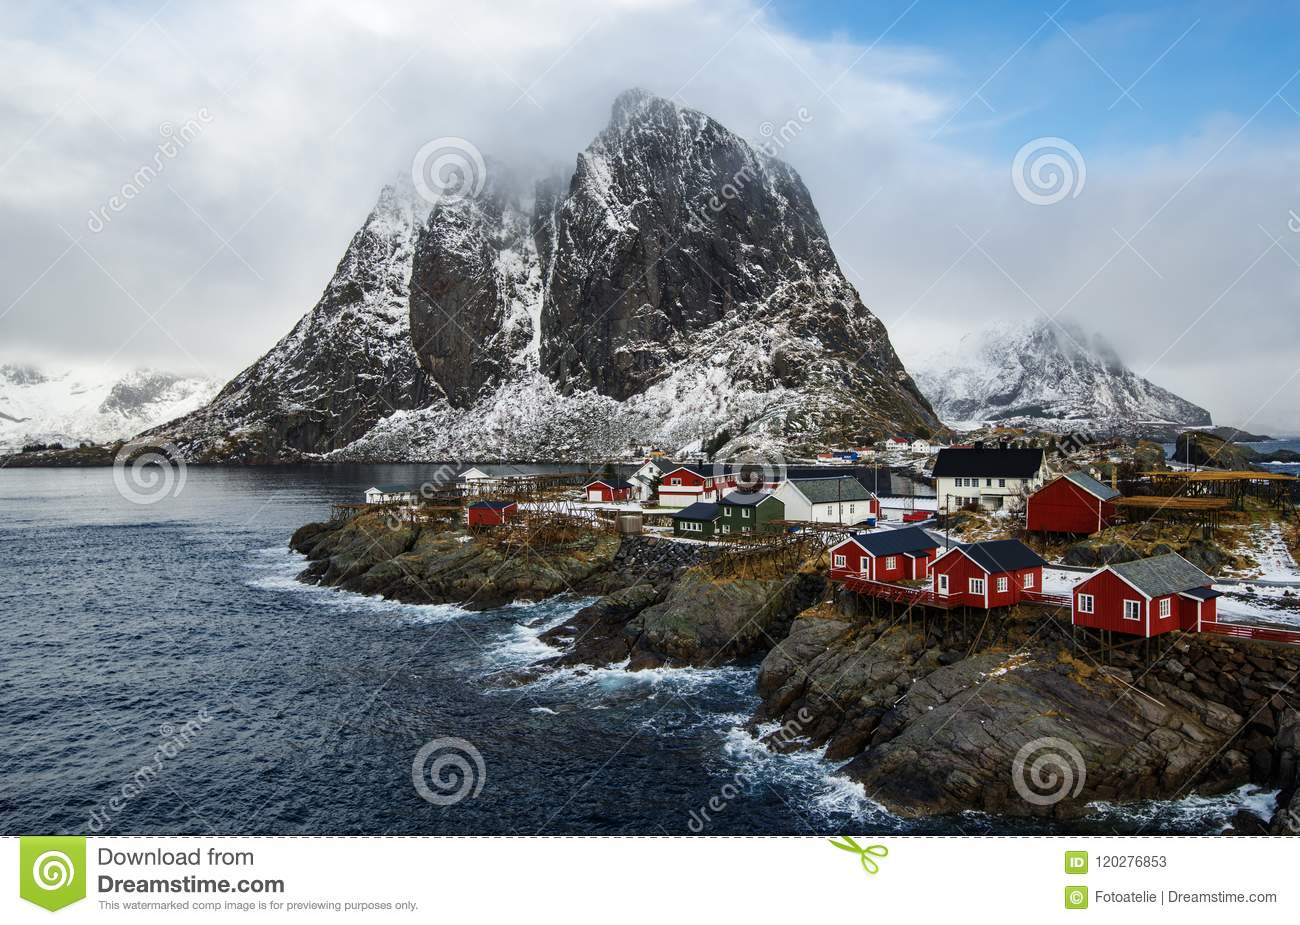 Famous tourist attraction Hamnoy fishing village on Lofoten Islands, Norway with red rorbu houses in winter.